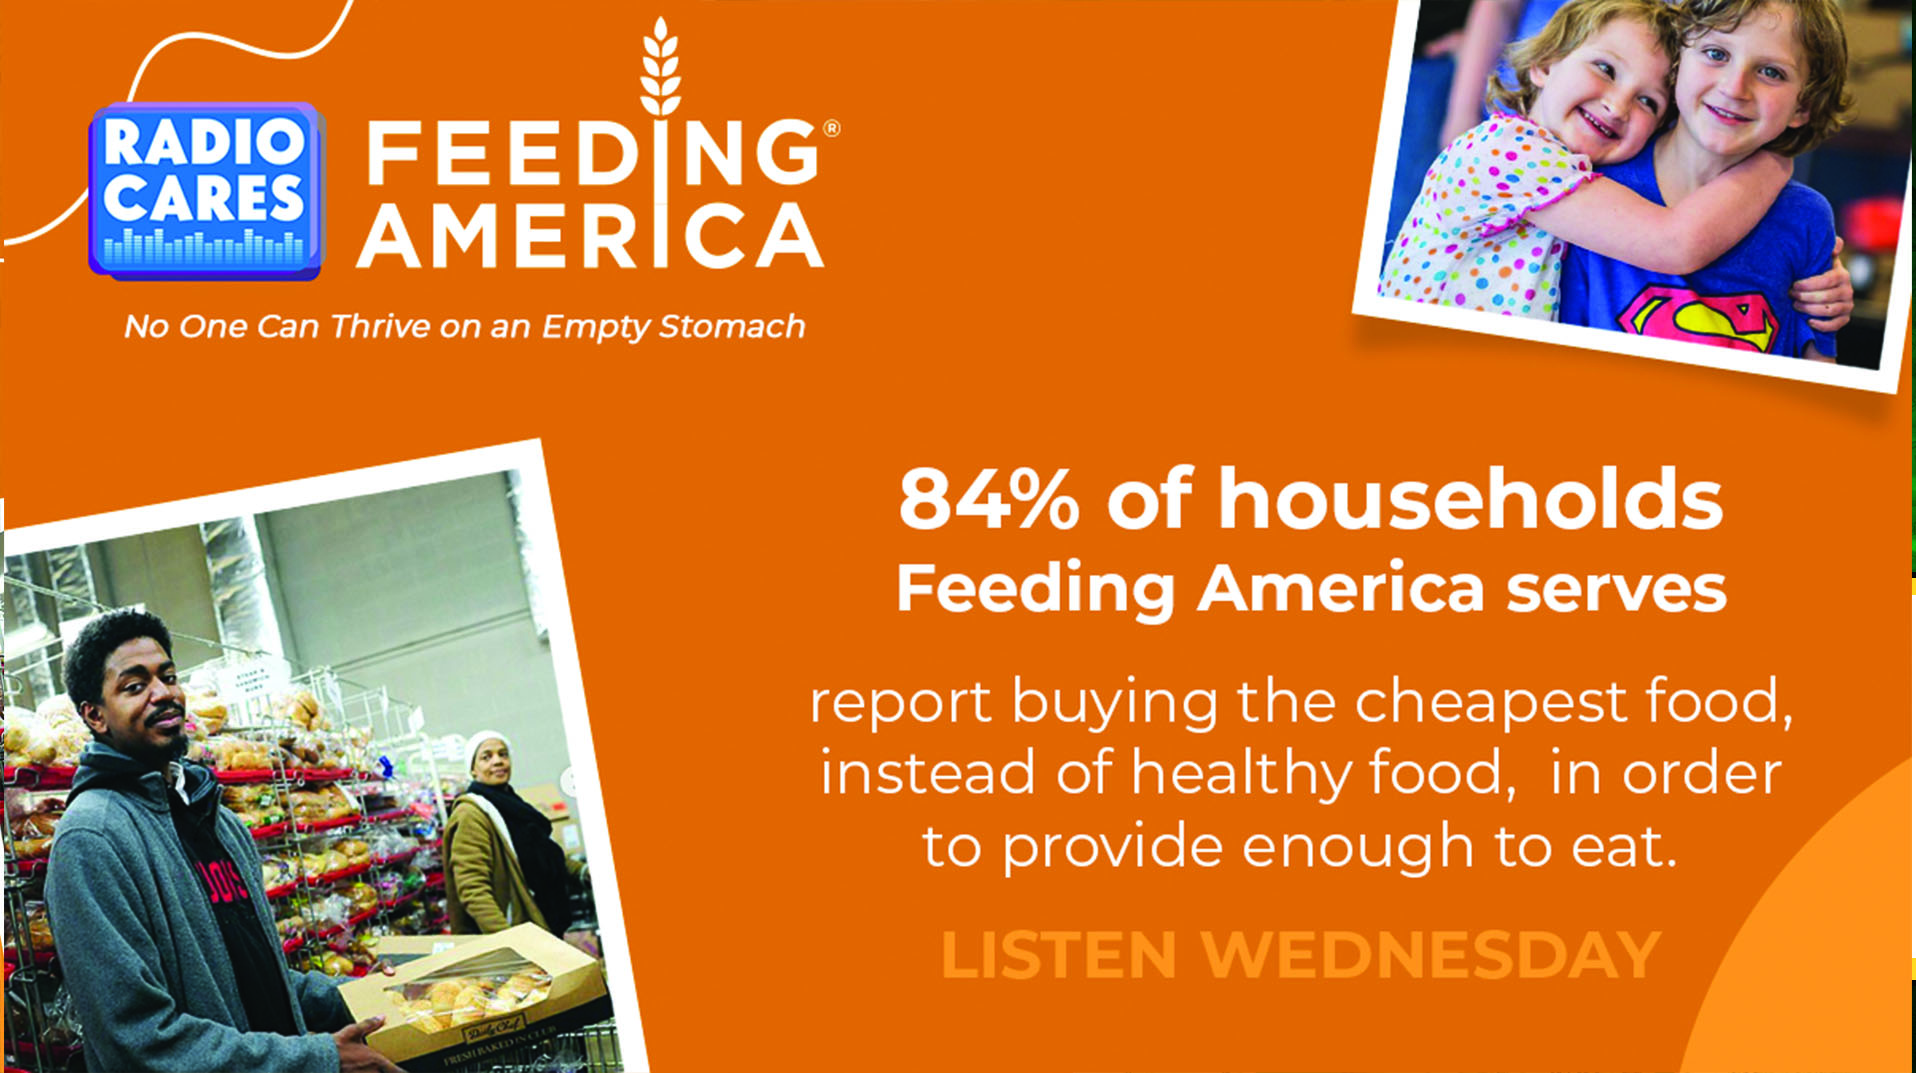 Radio Cares – Feeding America This Wednesday